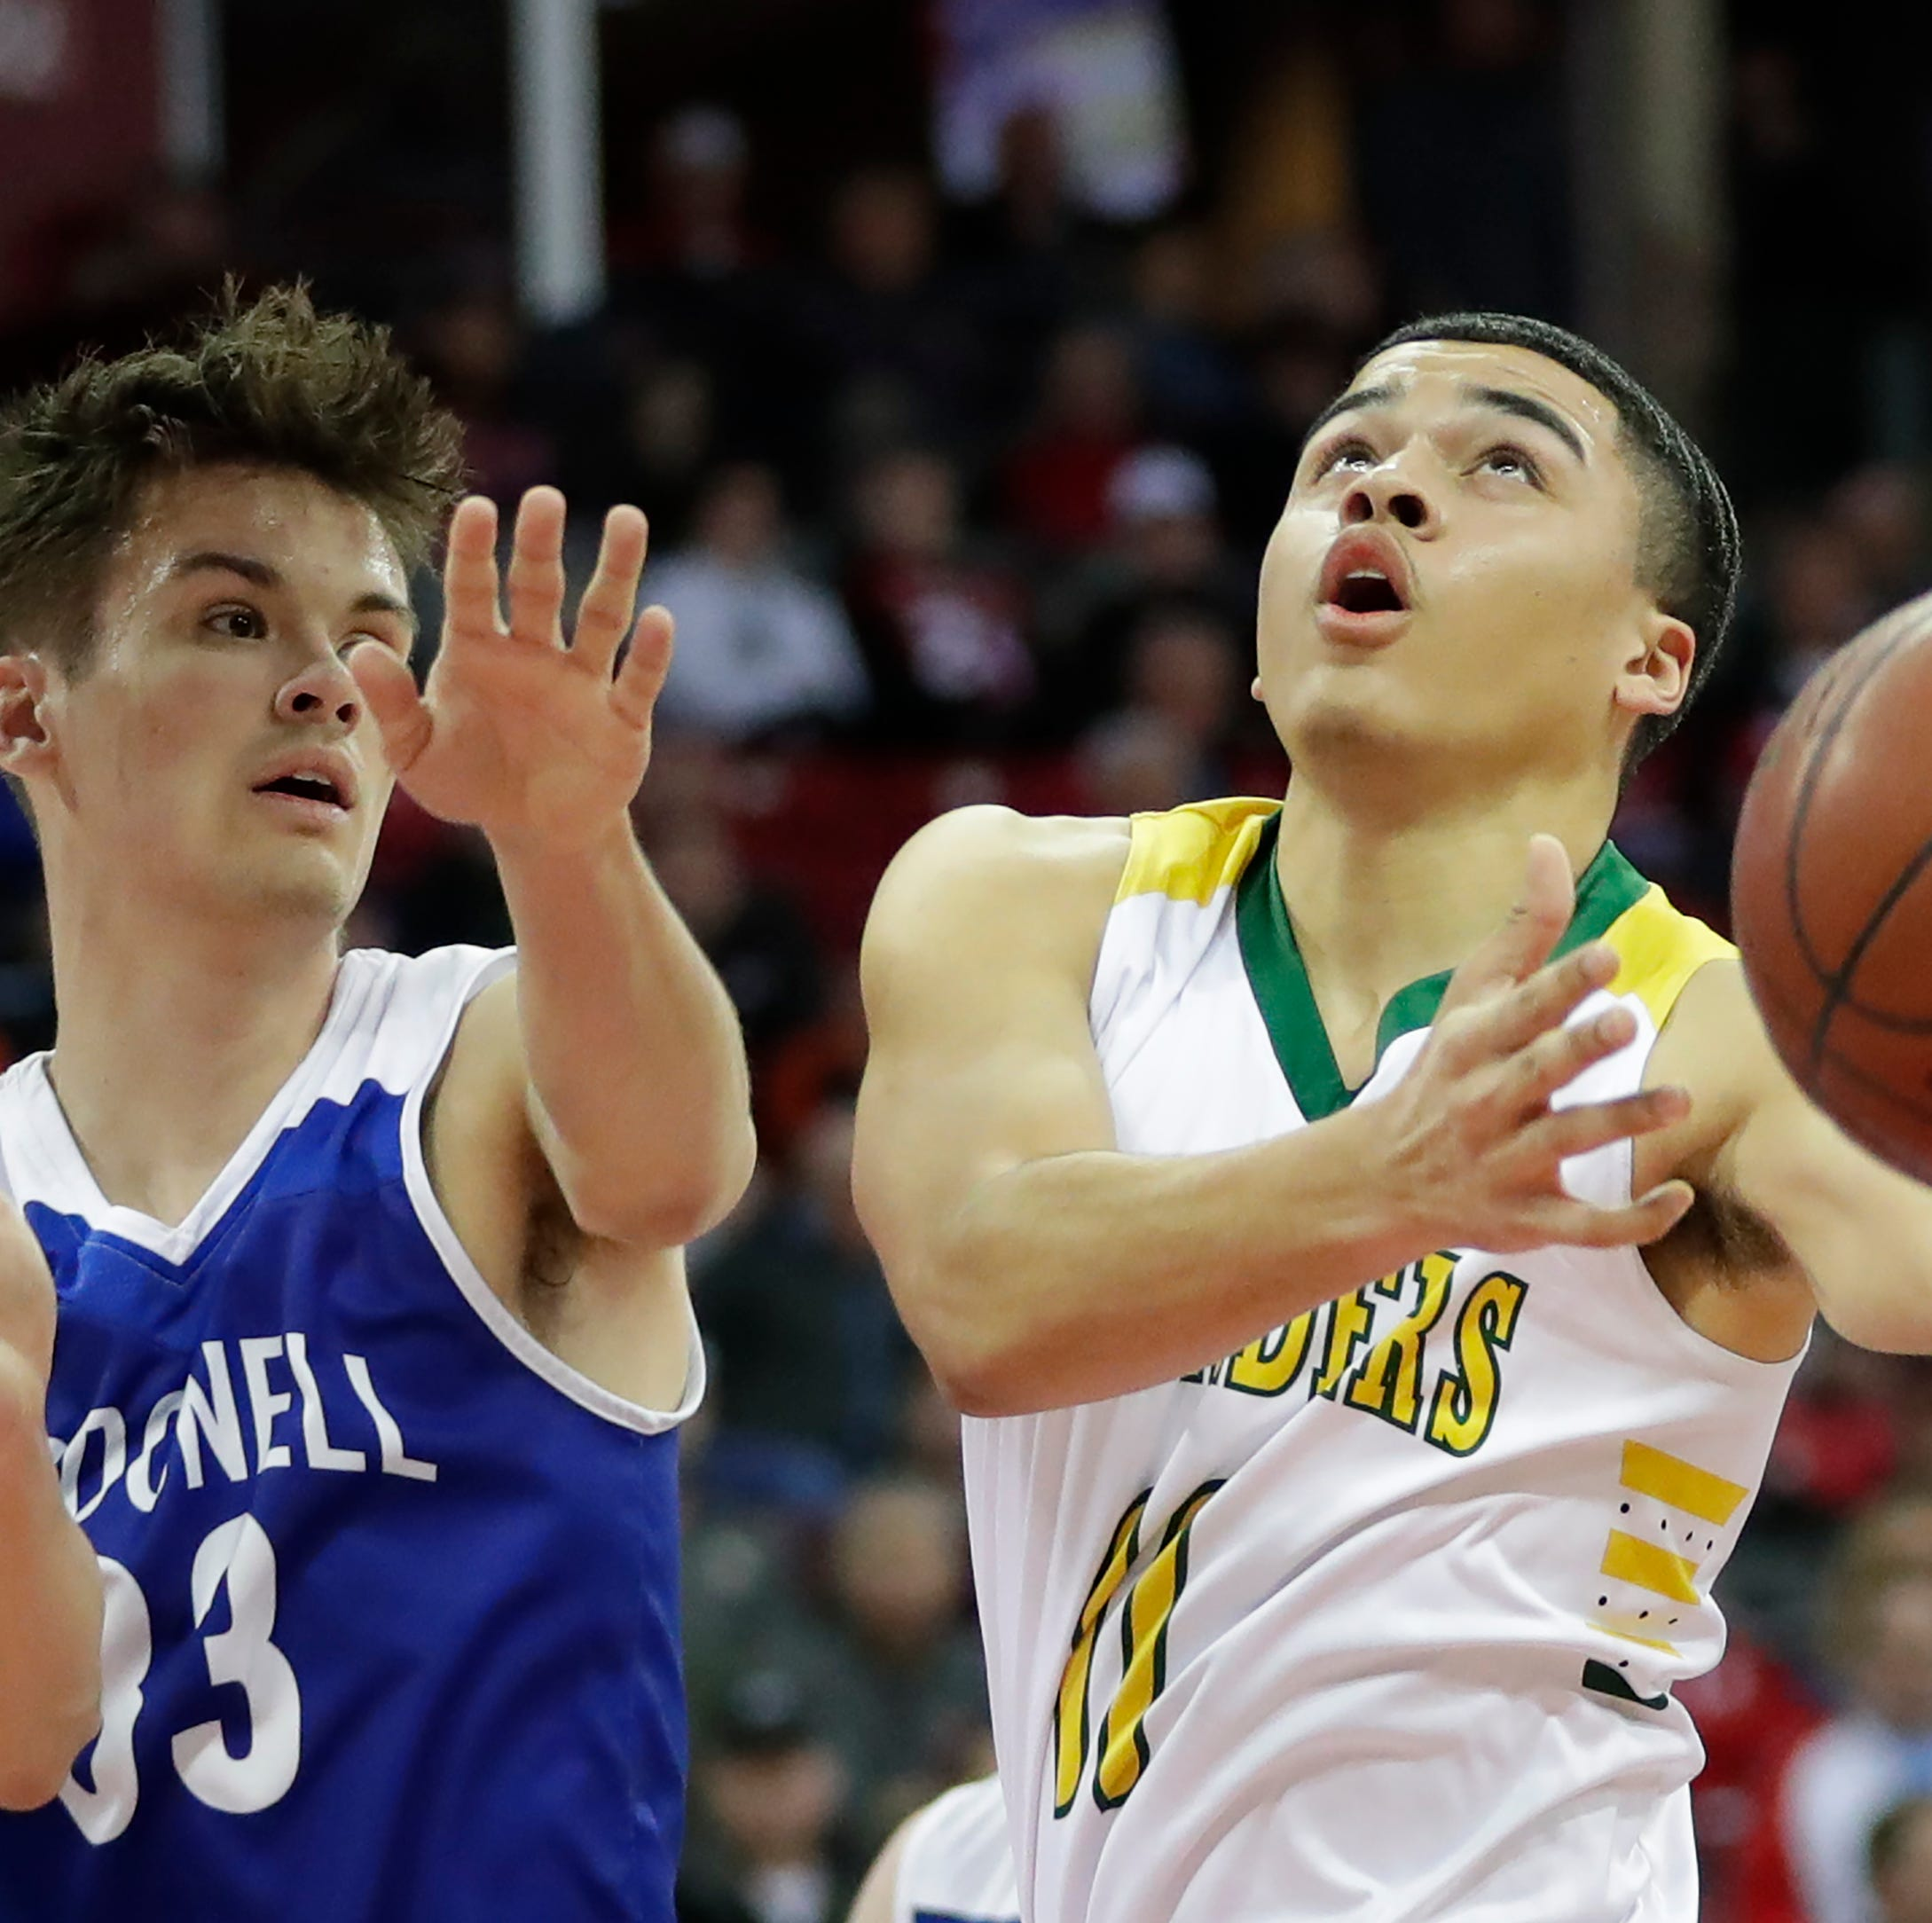 WIAA state basketball: Sheboygan Lutheran advances to Division 5 state championship game